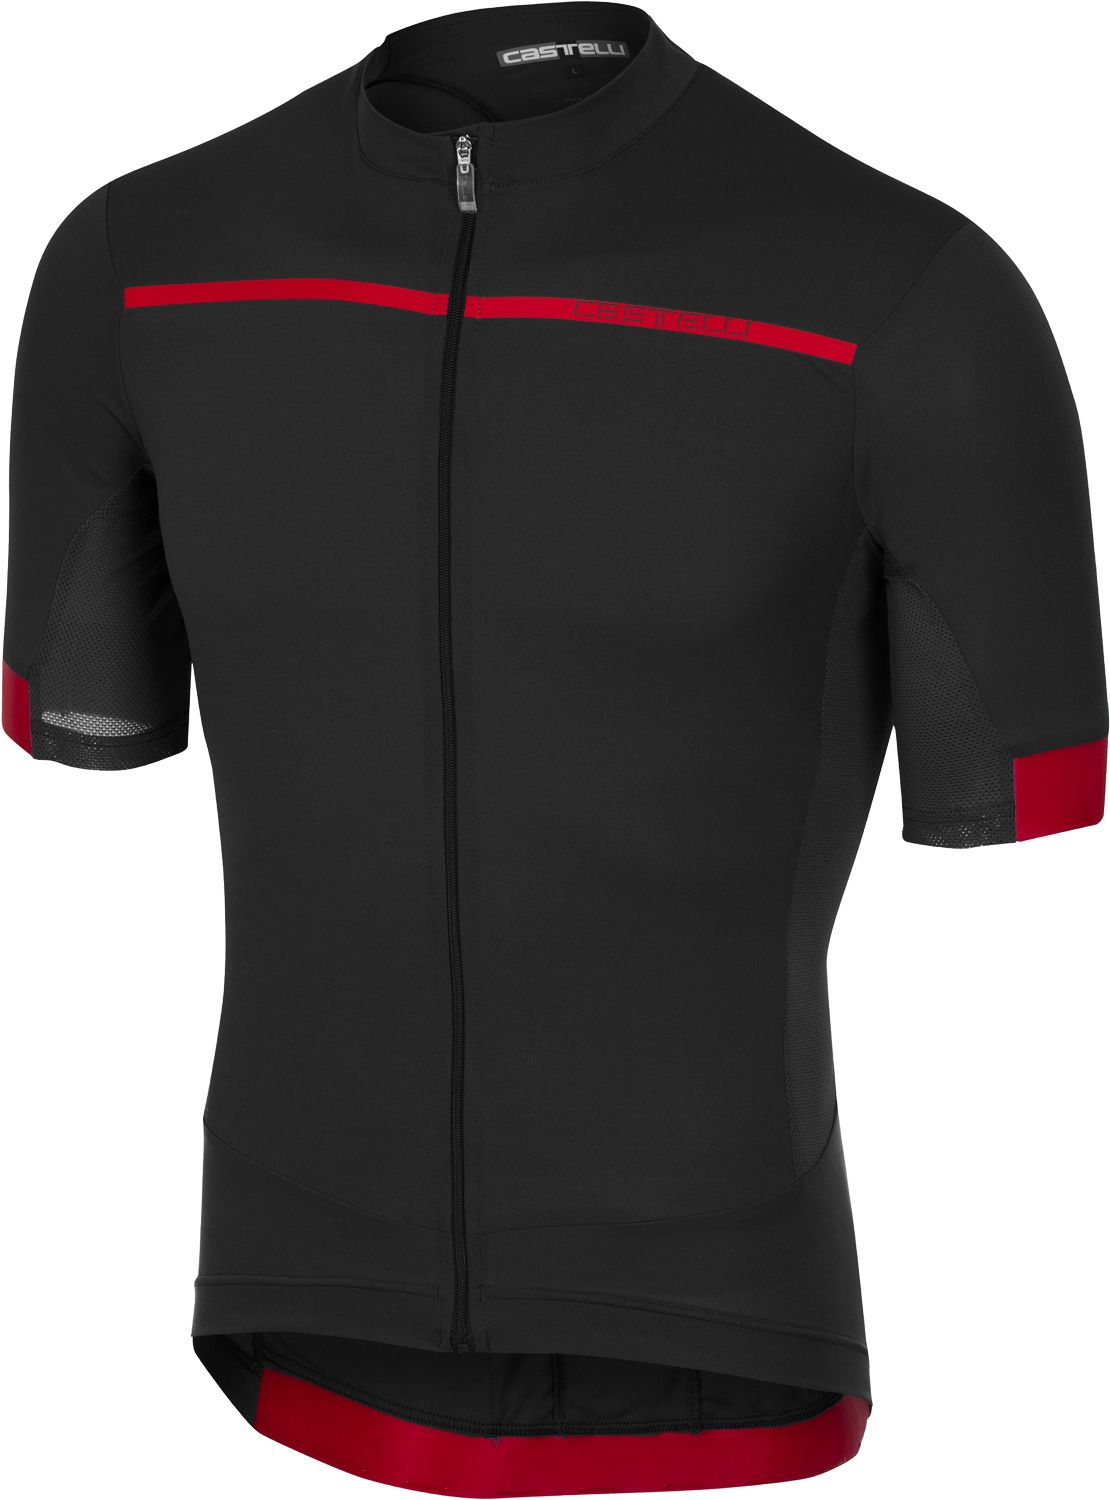 Castelli FORZA PRO - short sleeve cycling jersey anthracite. Previous 8e8f62859